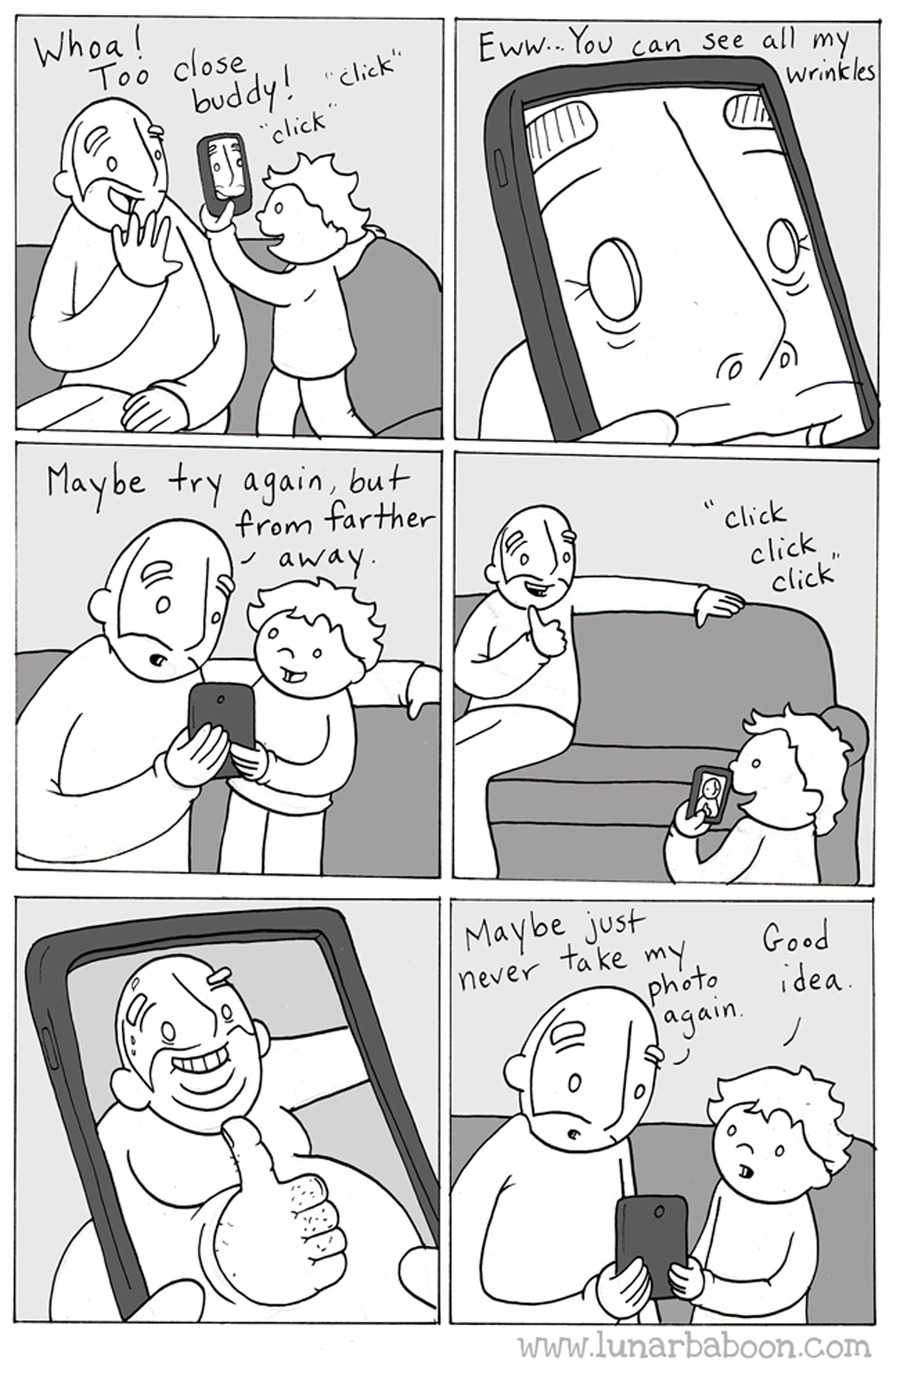 Lunarbaboon by Christopher Grady for January 20, 2019